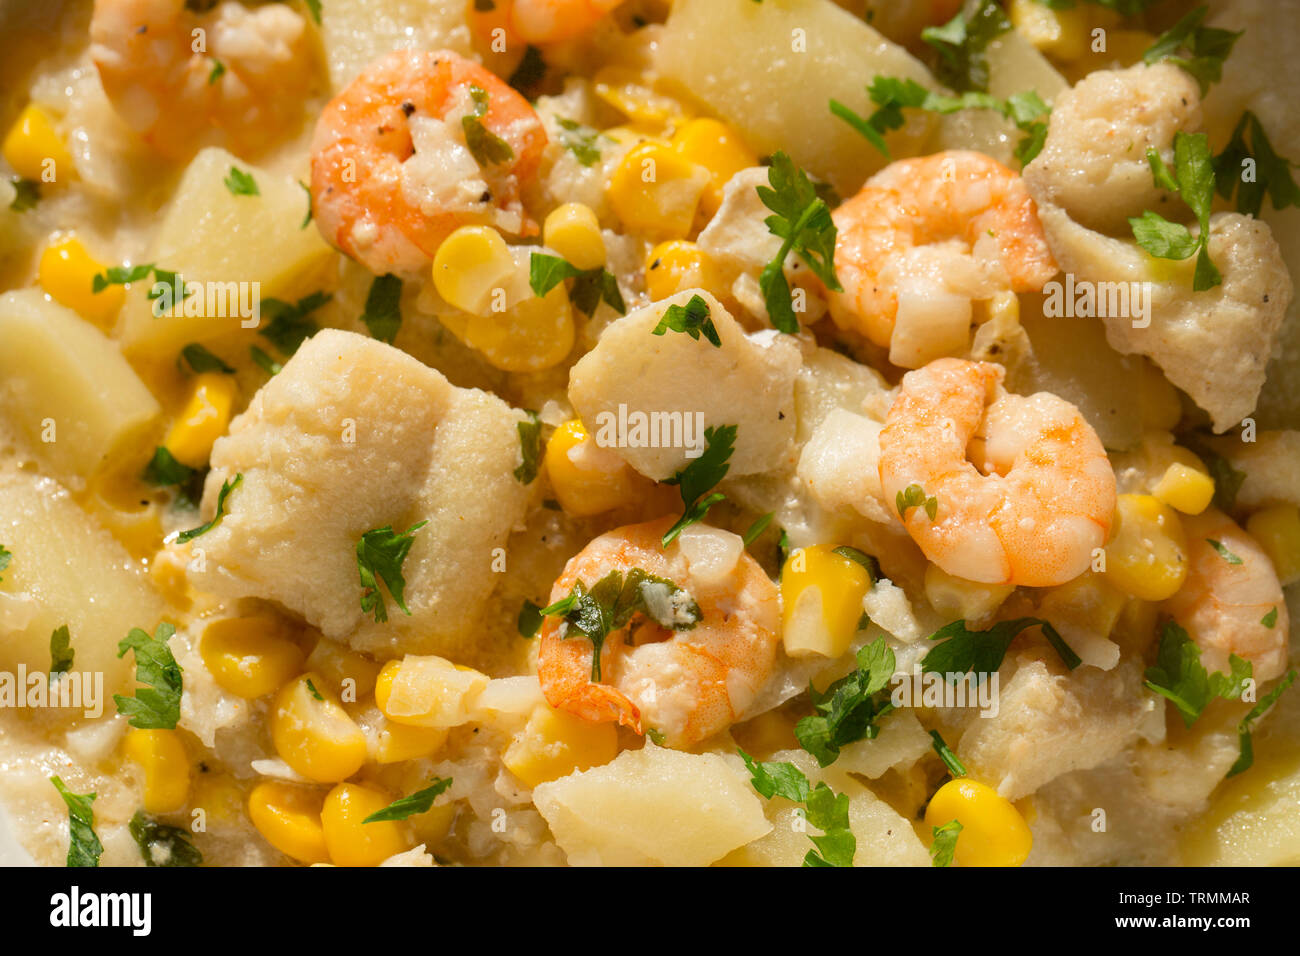 A chowder made from line-caught pollack, Pollachius pollachius, that was caught in the English Channel and king prawns bought from a UK supermarket an - Stock Image